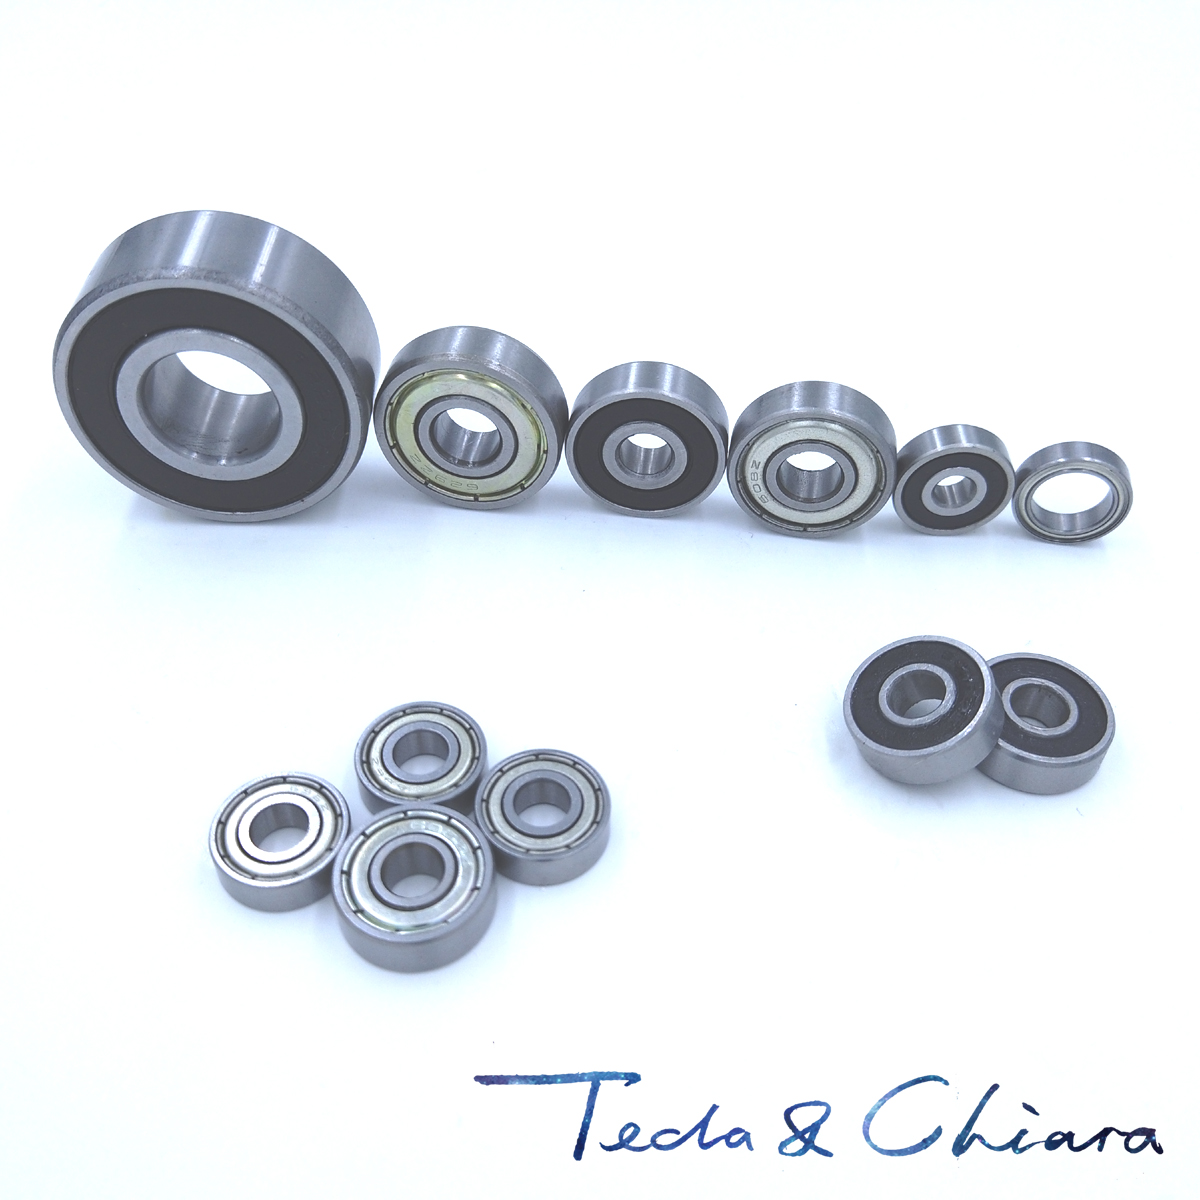 6205 6205ZZ 6205RS 6205-2Z 6205Z 6205-2RS ZZ RS RZ 2RZ Deep Groove Ball Bearings 25 X 52 X 15mm